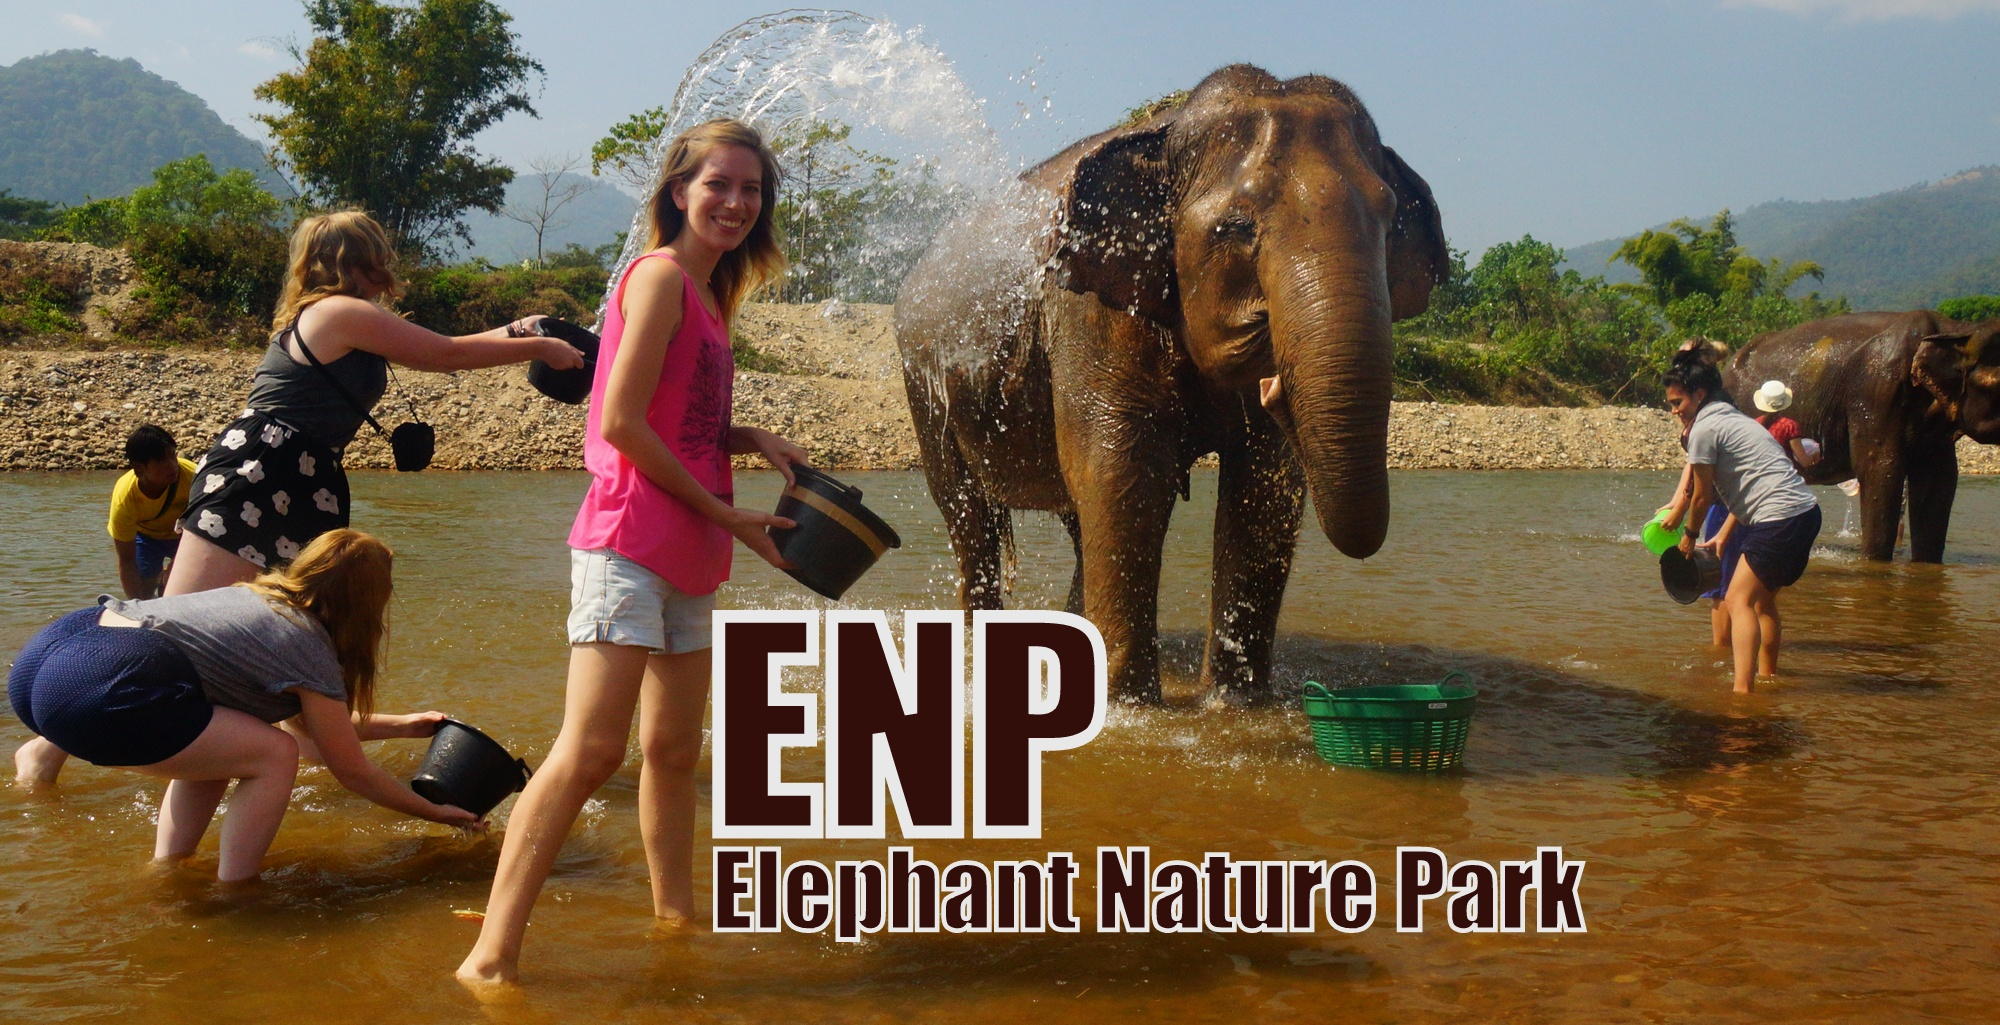 Elephant Nature Park located in Chiang Mai Province, Thailand